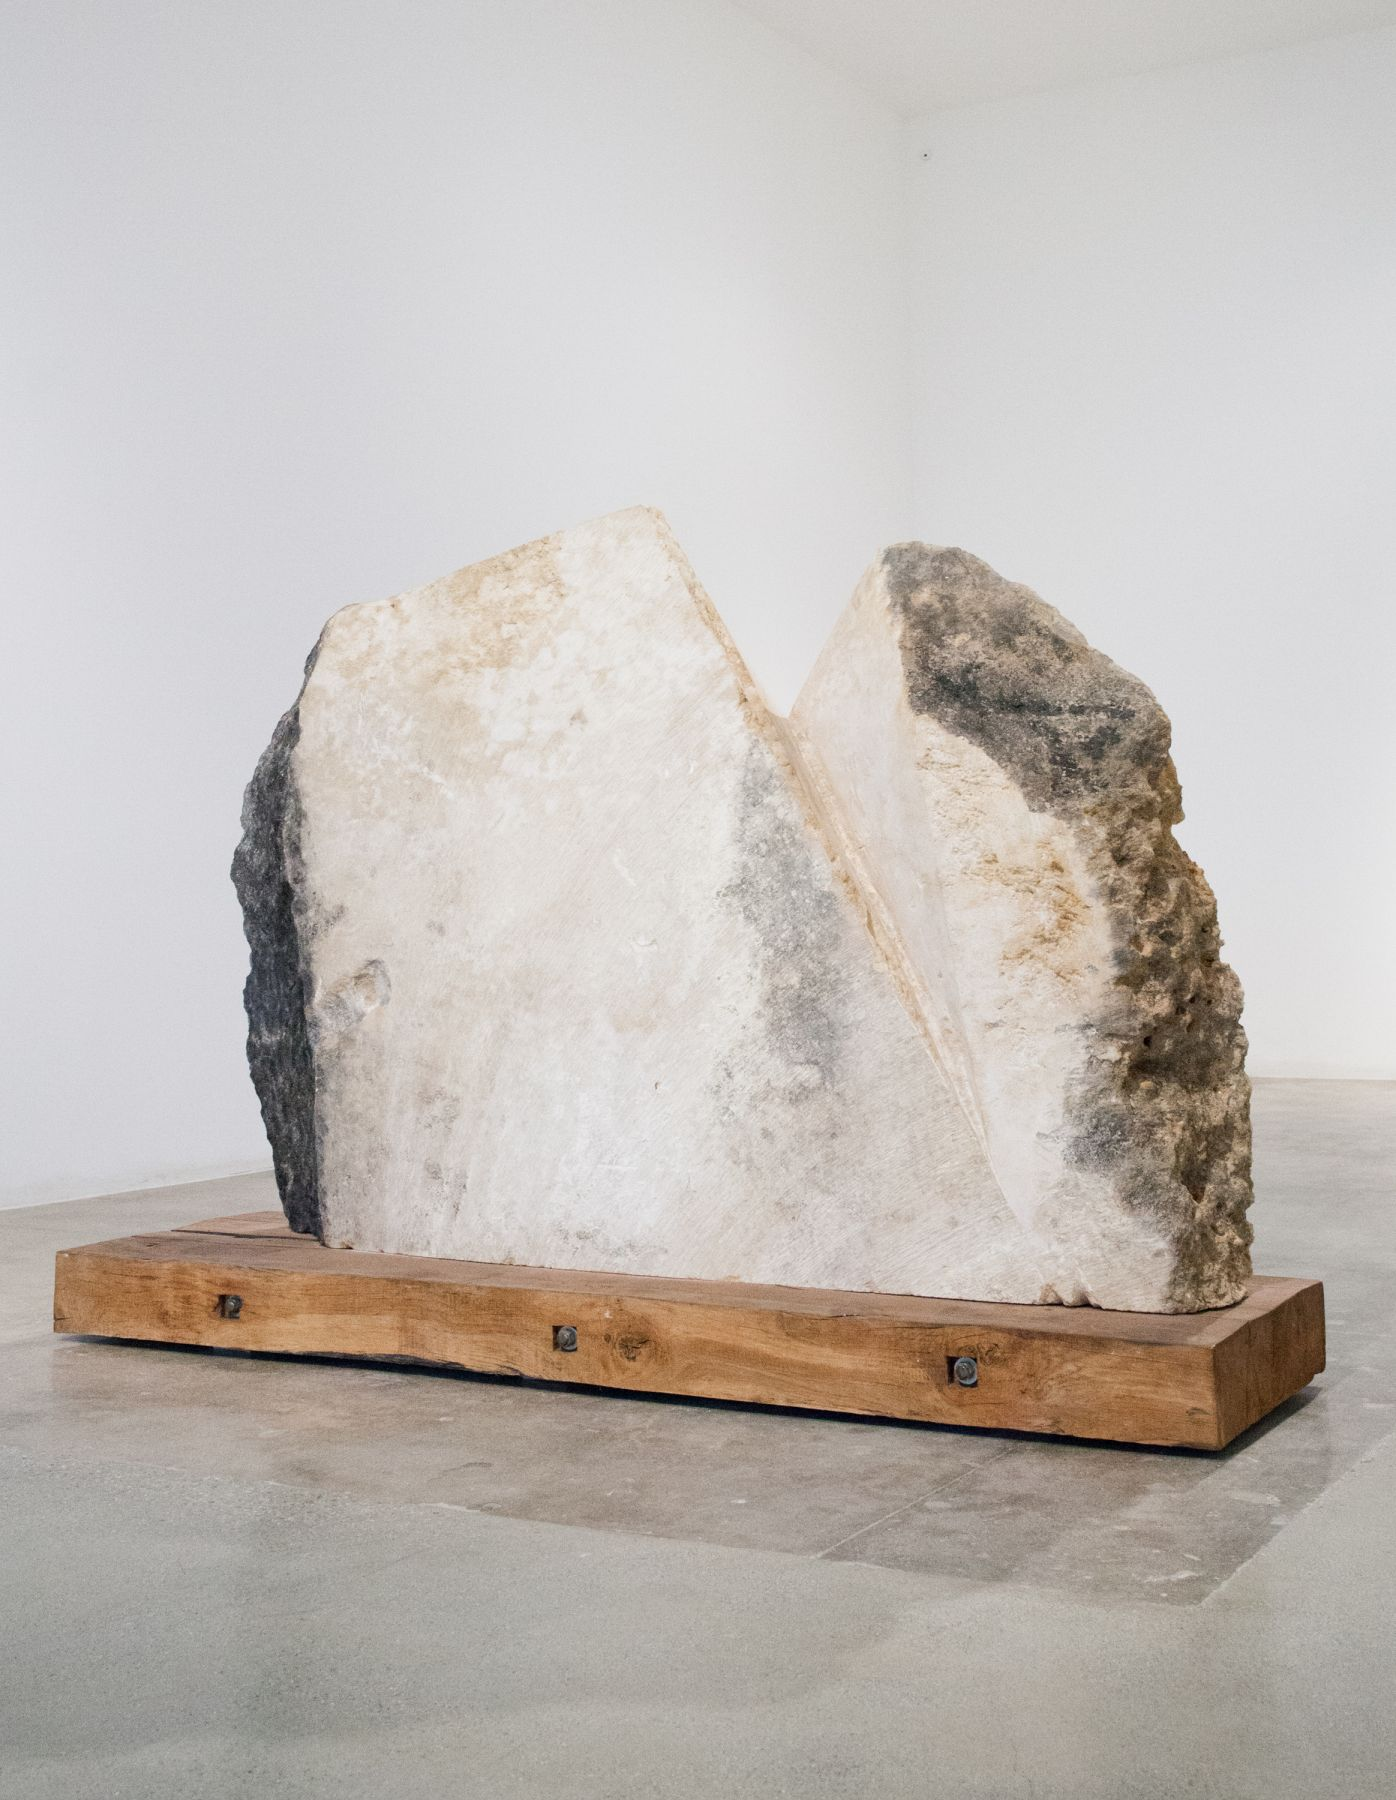 Beverly Pepper, Erased Presence, 2000